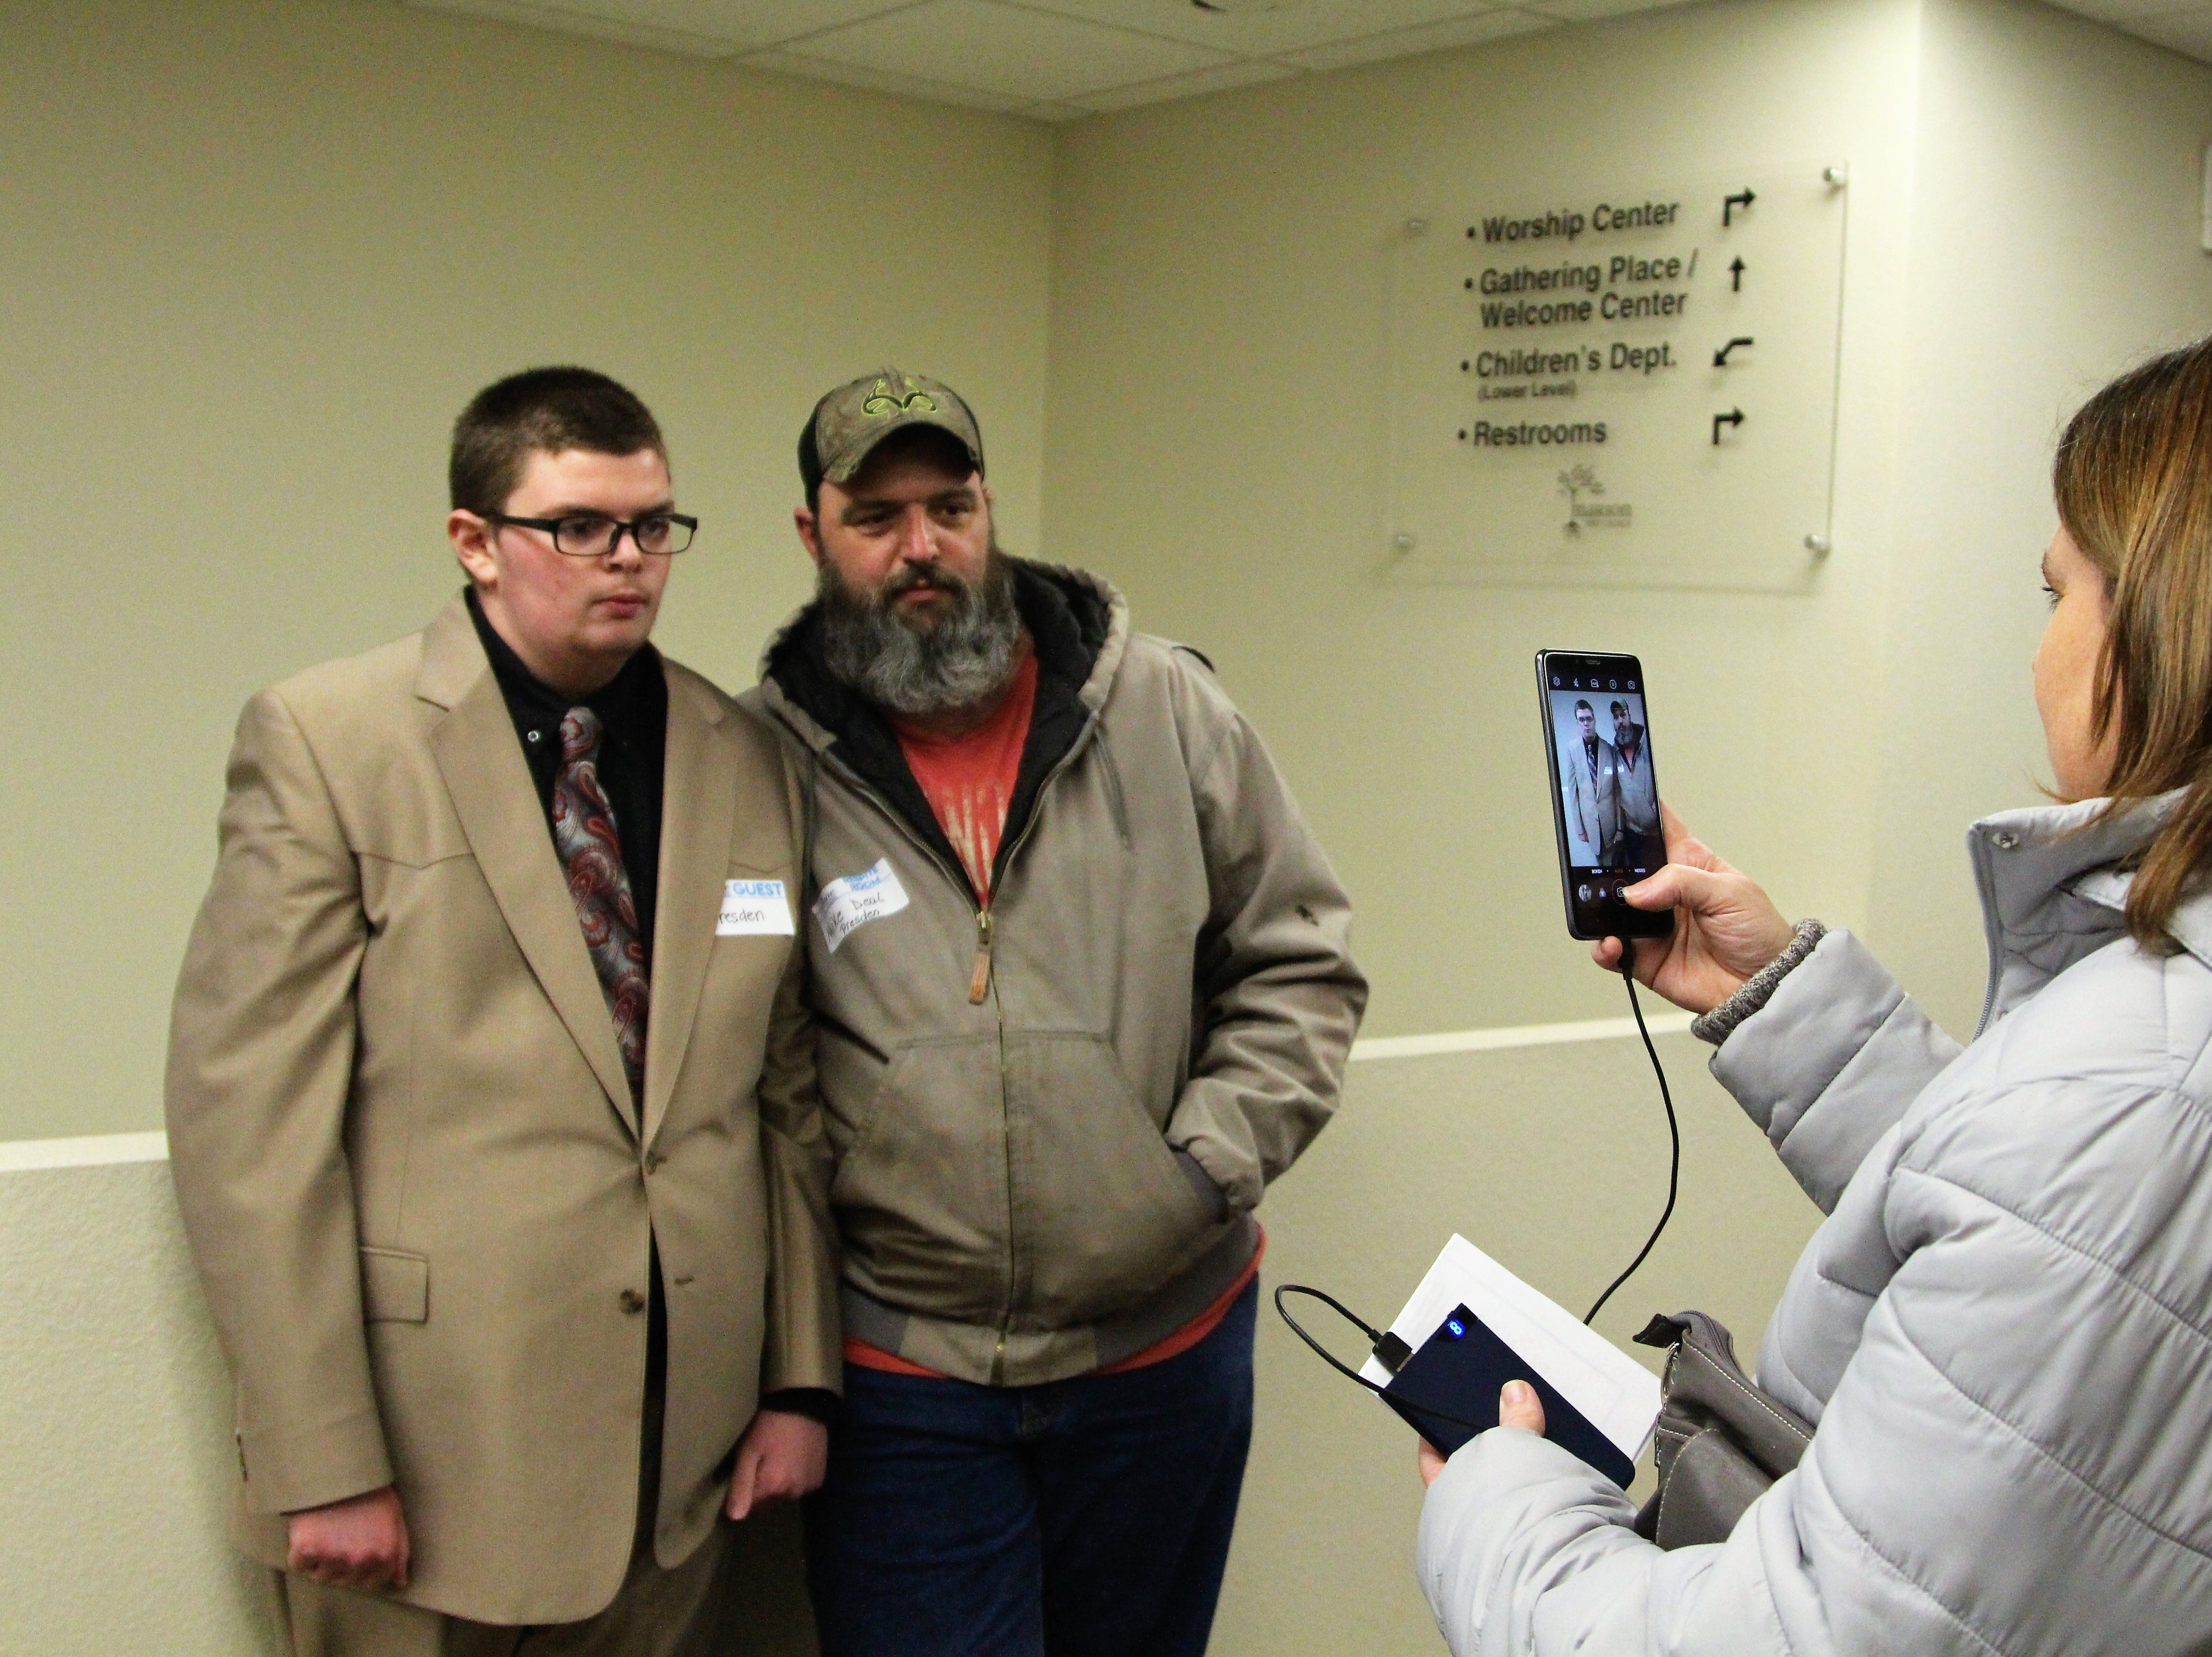 """Wenetta Deal takes a picture of her son Presden and husband Mike as they stand near the entrance of Marion First Church of the Nazarene, which hosted a Night to Shine. """"(Presden) was so little for so long,"""" she recalled. """"Then he got so big. Hasn't slowed down since."""""""